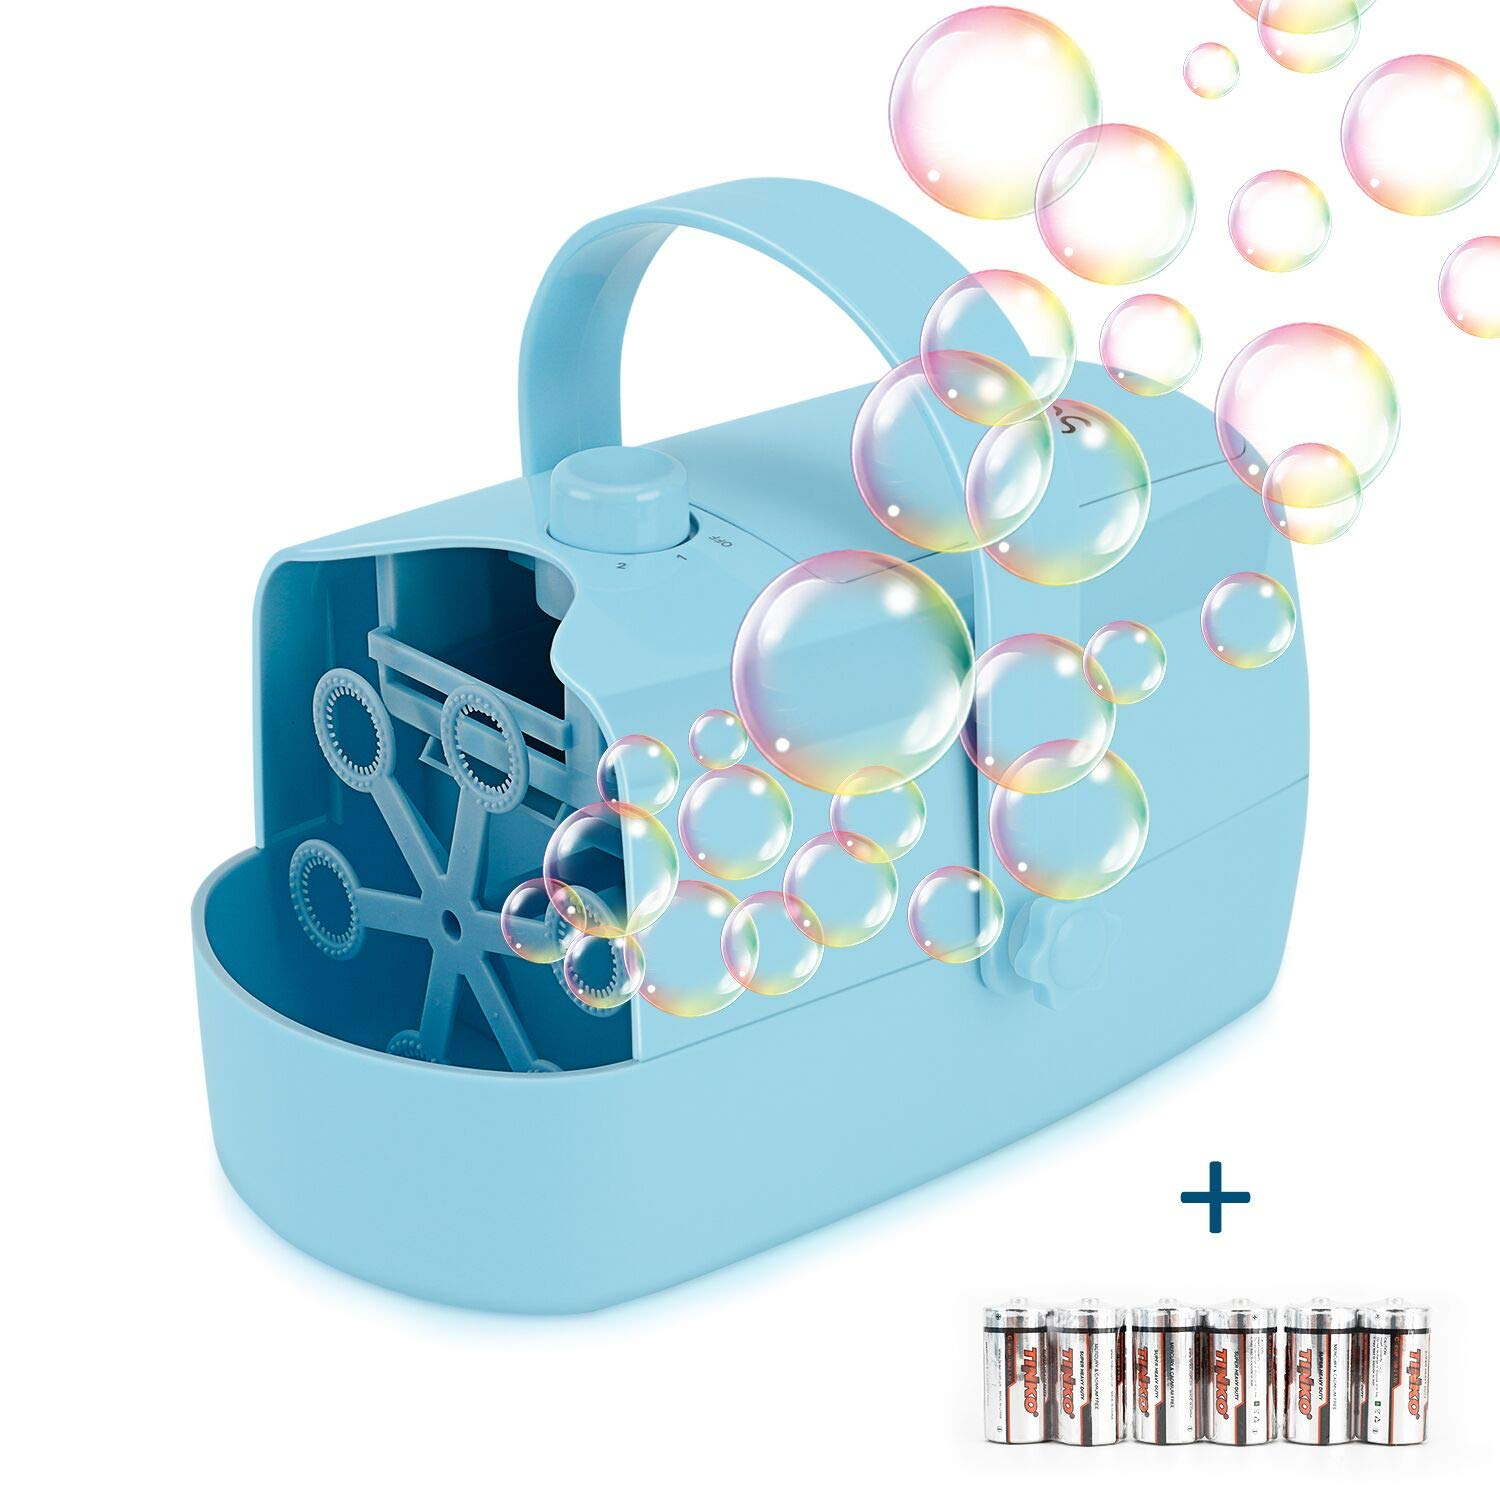 Supkiir Automatic Bubble Machine, Bubble Blower for Kids Powered by Plug-in or Batteries, with Two Bubbles Blowing Speed Levels for Party, Wedding, Outdoor Indoor Toys